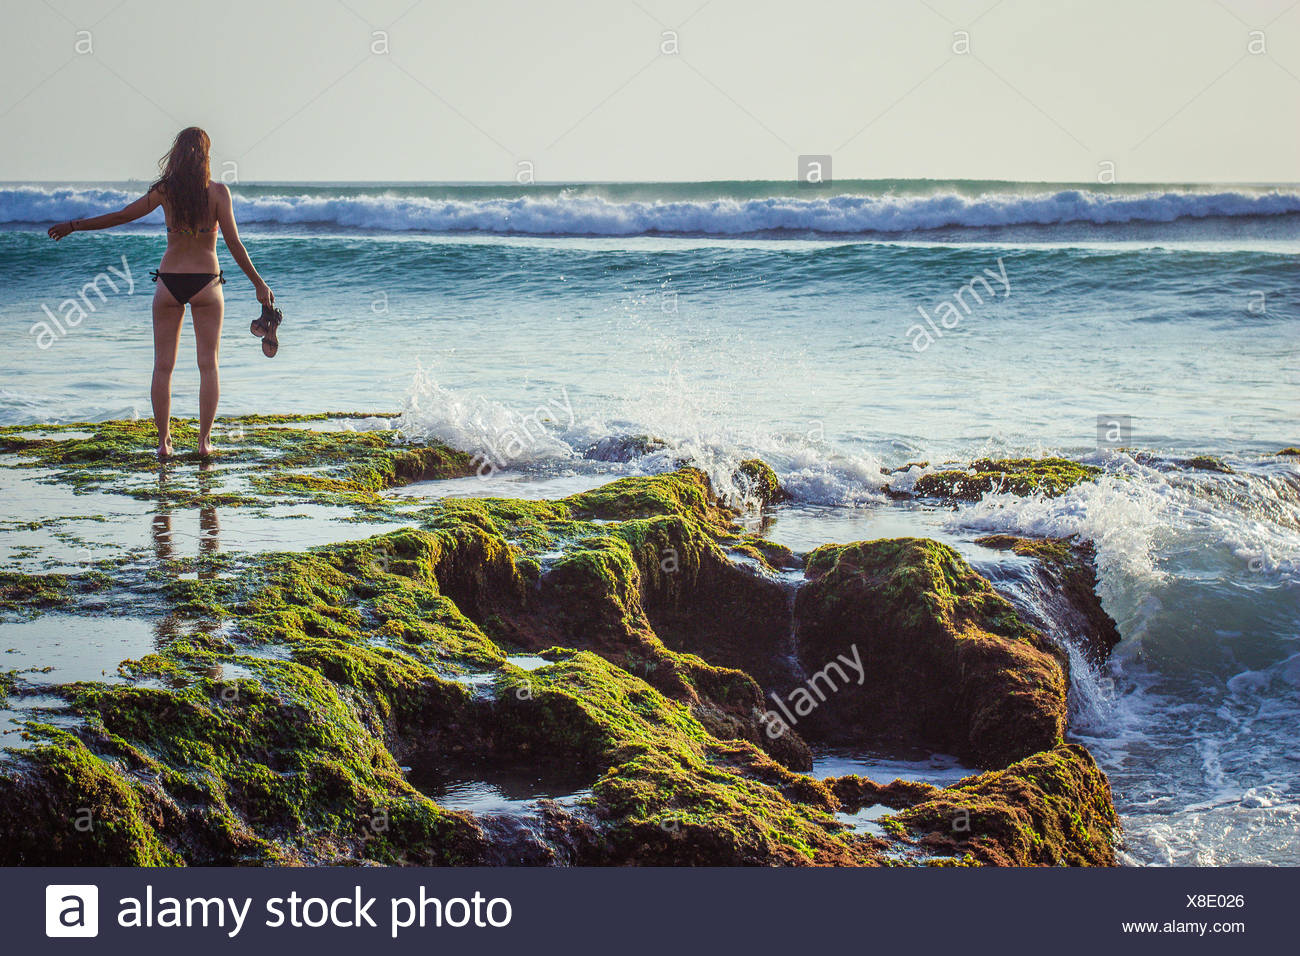 Indonesia, Bali, Woman standing in front of sea - Stock Image